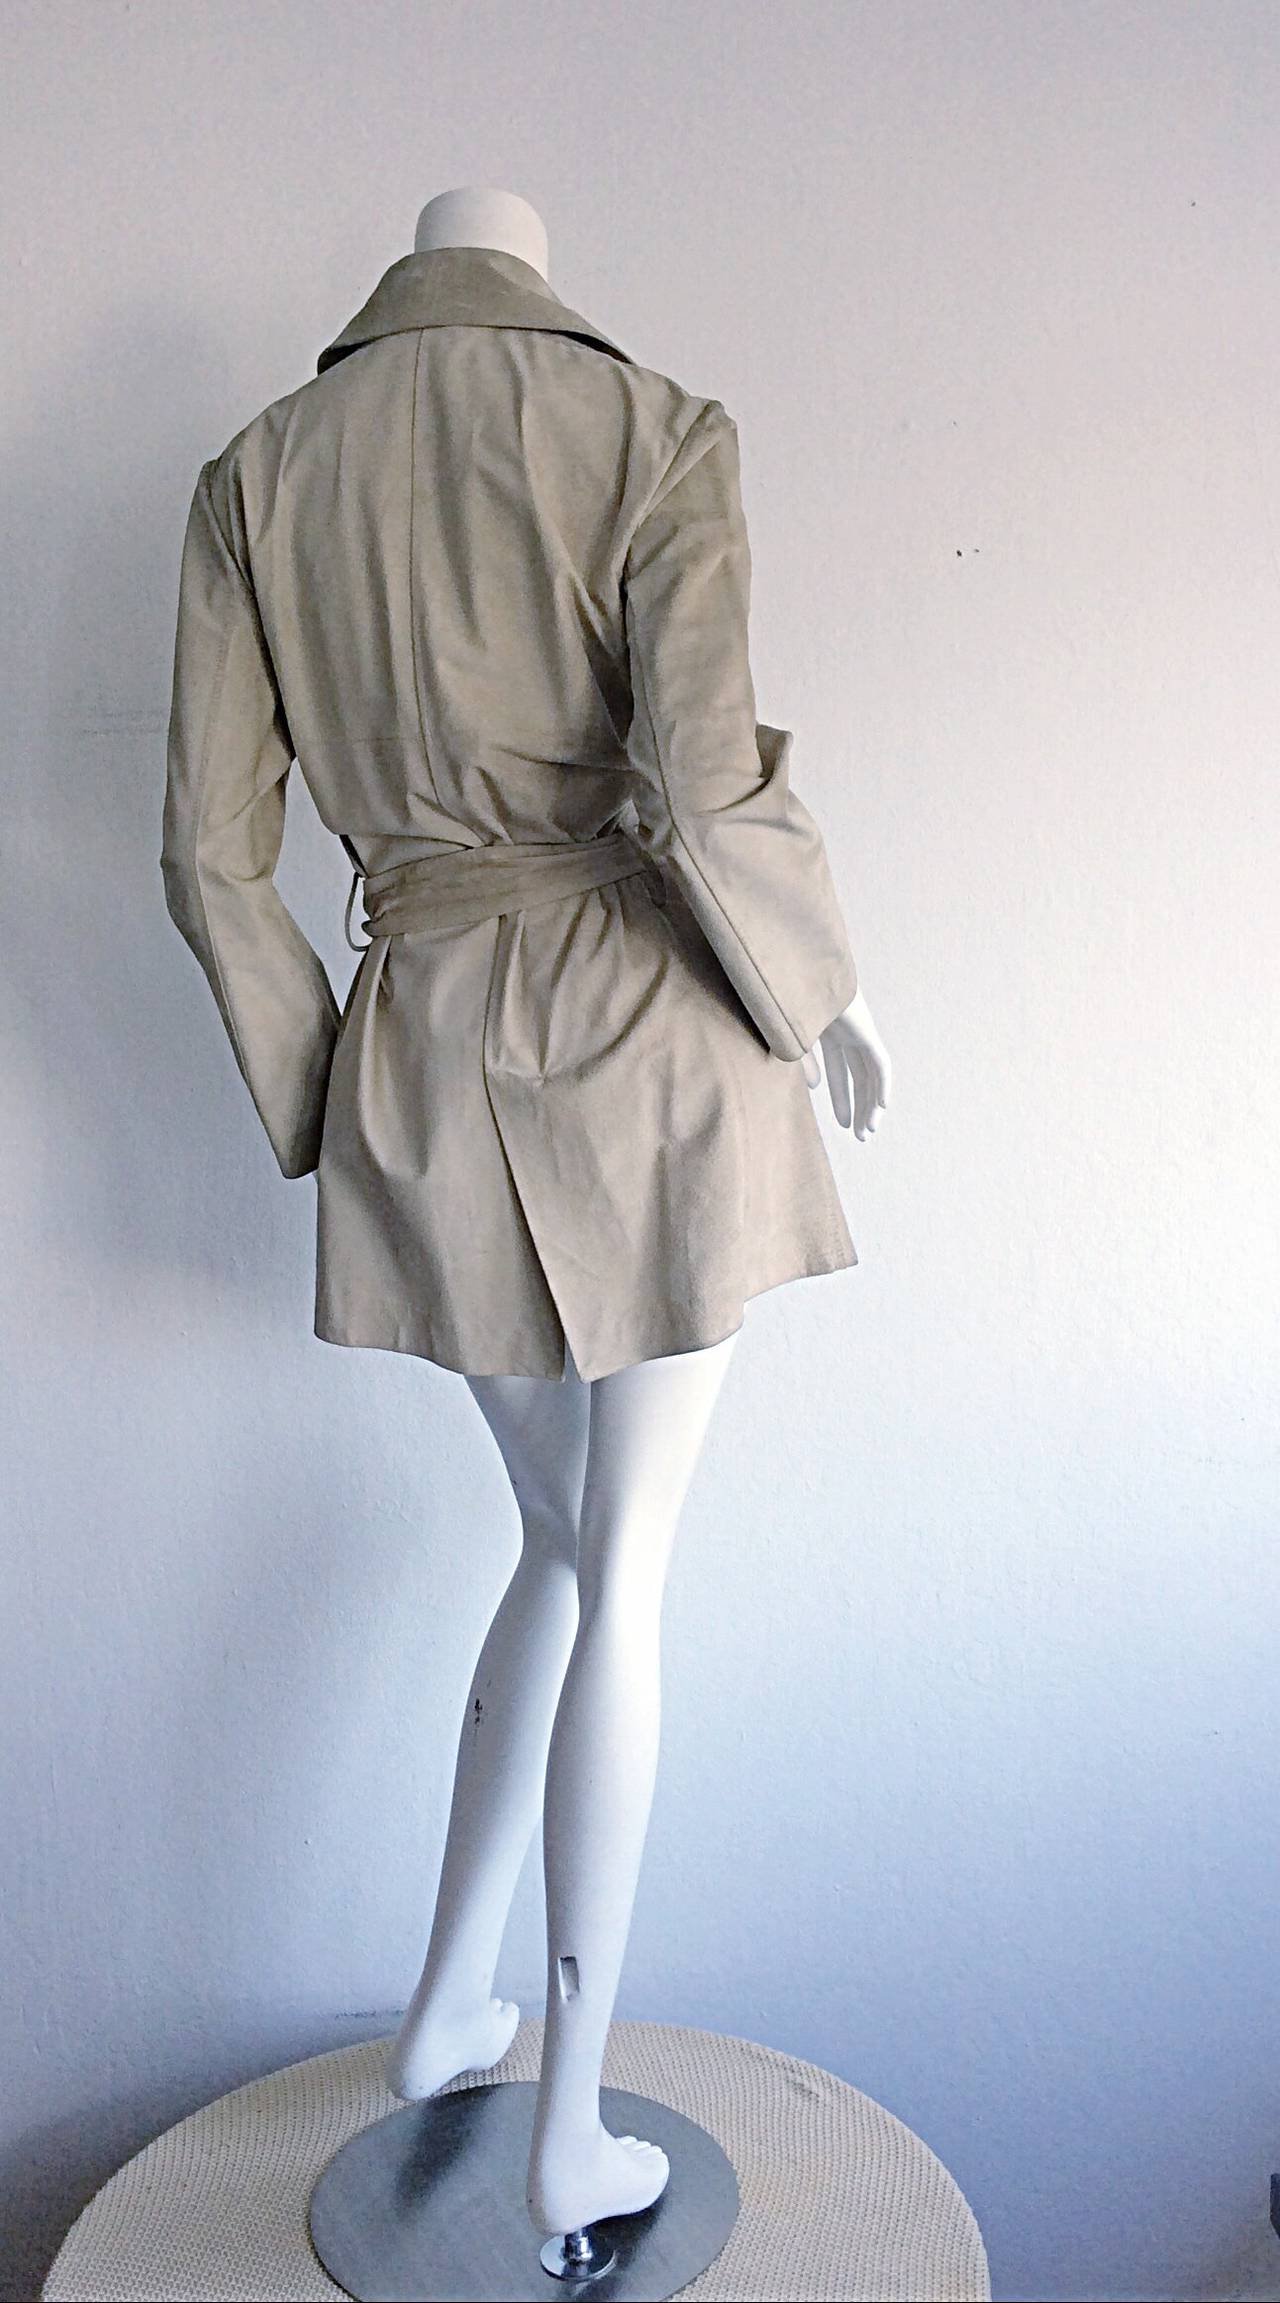 Tom Ford For Gucci 1990s Suede Leather Stone Khaki Belted Spy Trench Coat Jacket In Excellent Condition For Sale In Chicago, IL